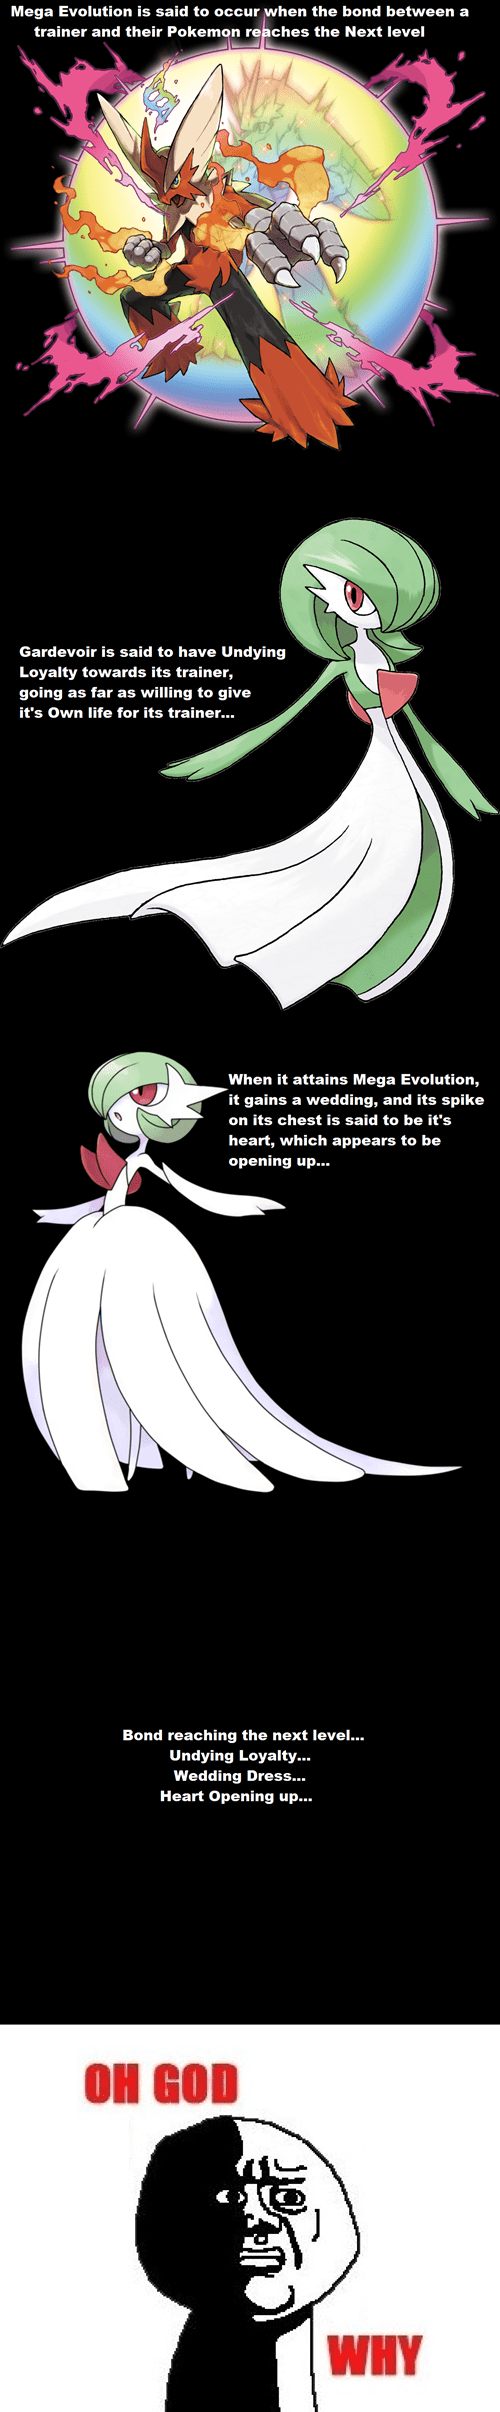 Pokémon marriage mega evolution - 7929158912